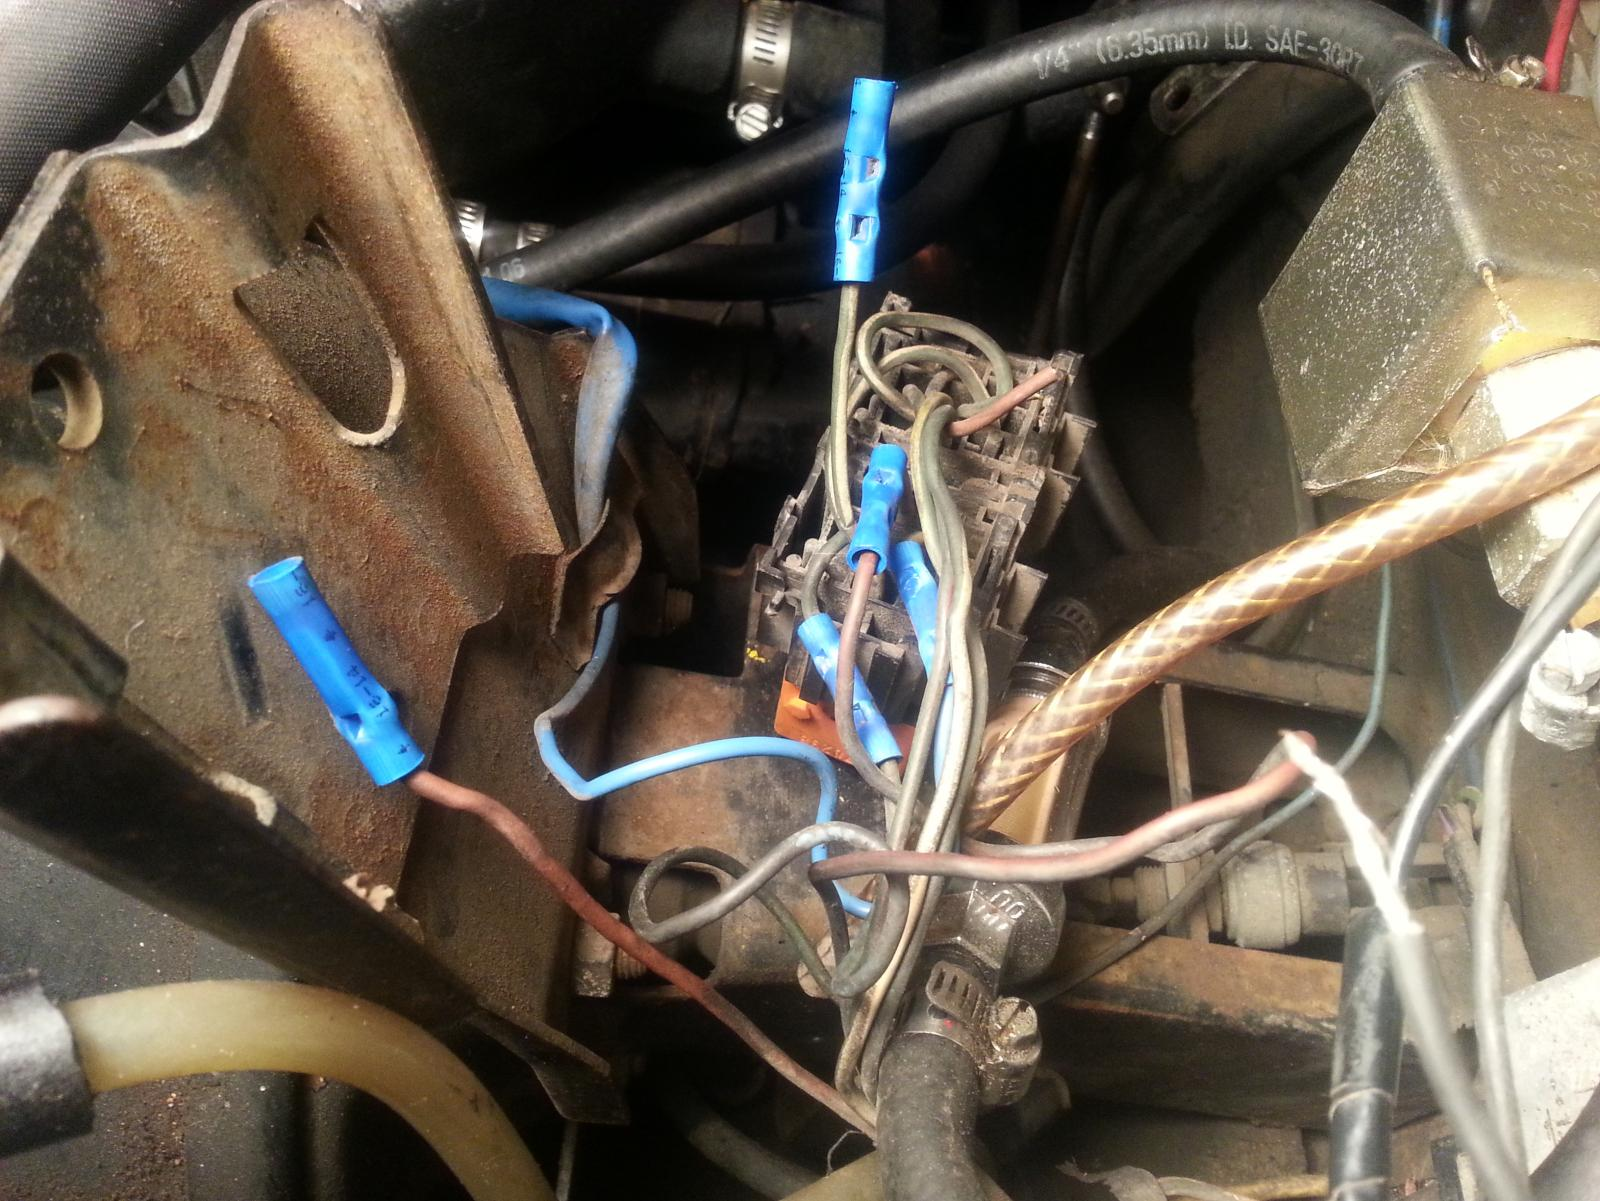 Tach Not Working How To Diagnose - BMW 2002 and other '02 - BMW 2002 FAQBMW 2002 FAQ